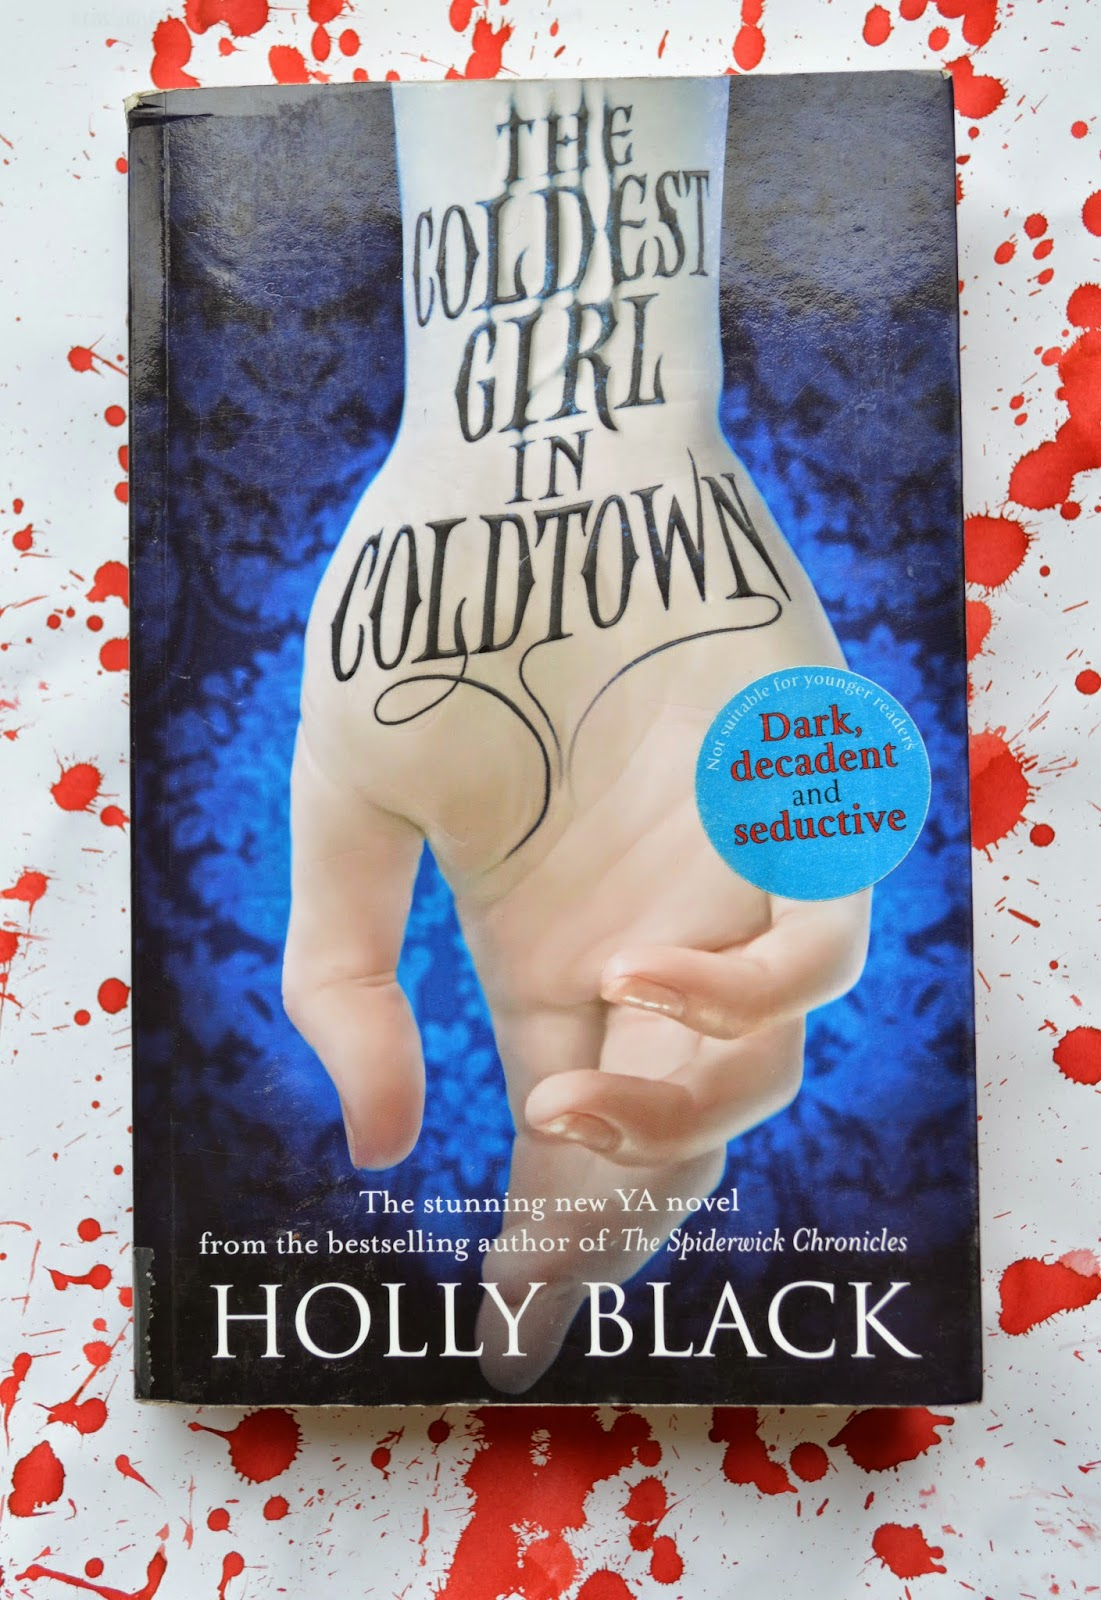 novel, Holly Black, The Coldest Girl in Coldtown, vampire, YA Fiction, review, book, American literature, if you like Twilight,